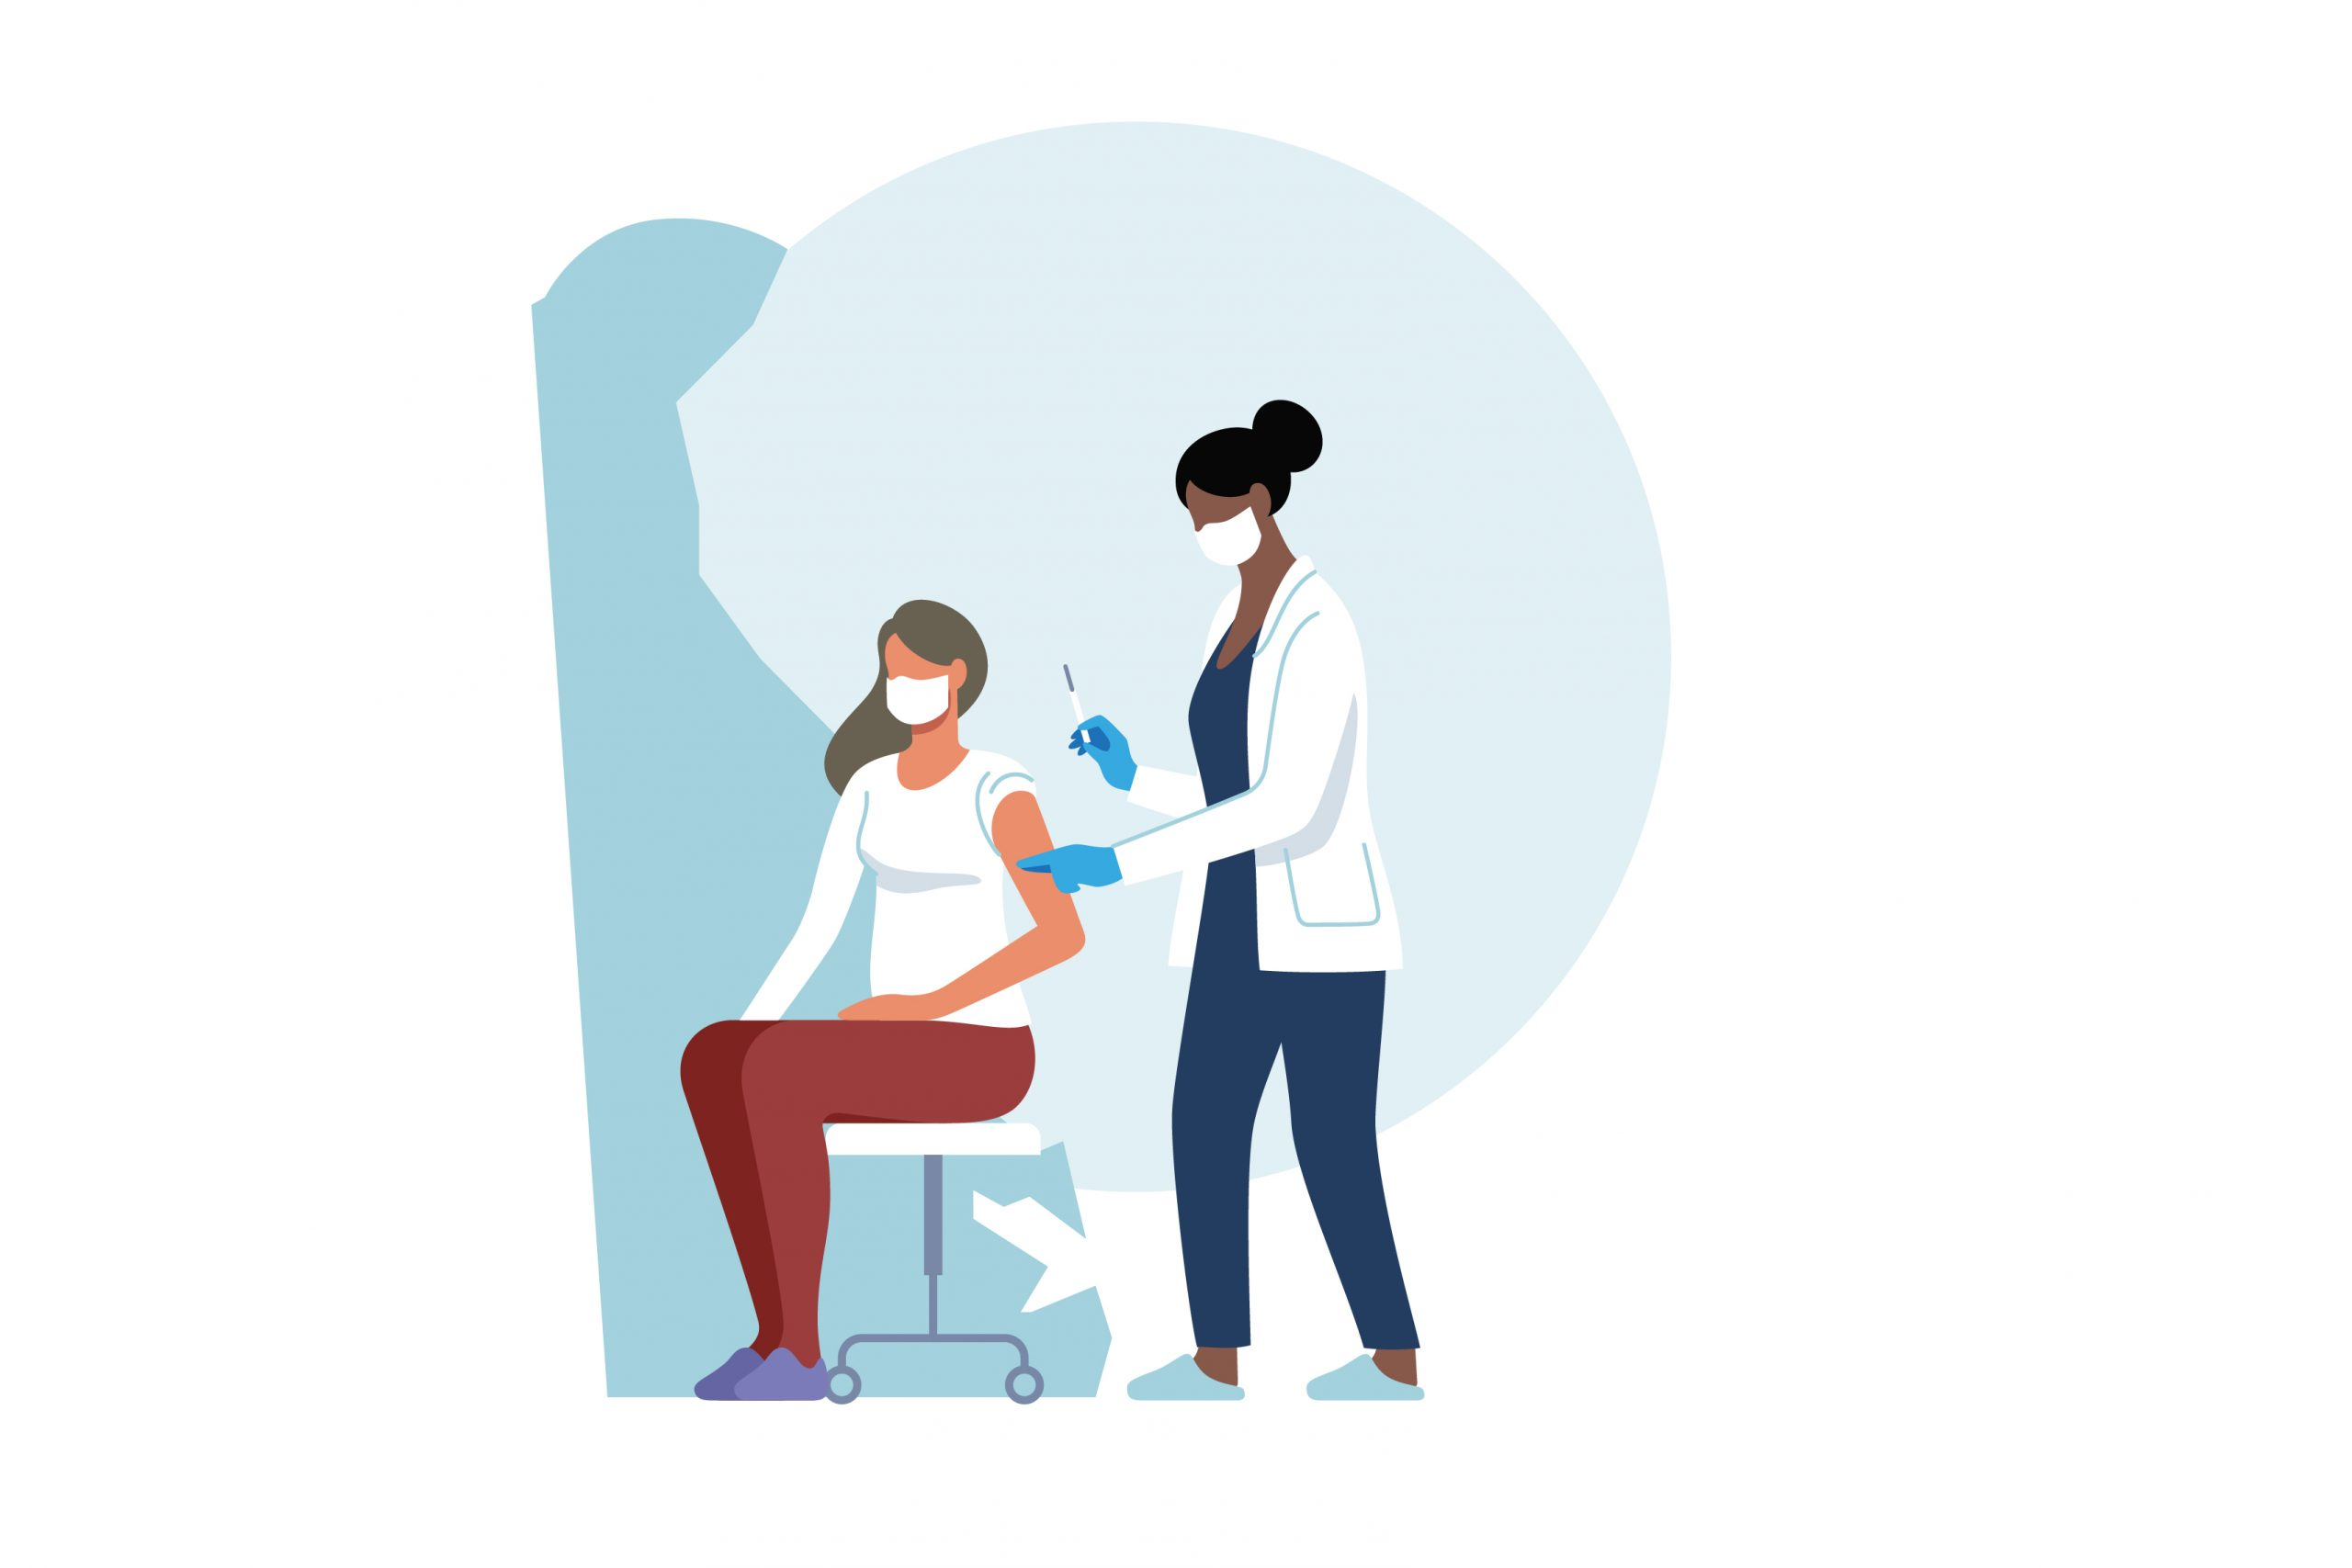 Illustrative graphic of a female doctor or nurse giving a COVID-19 vaccine to another female. Illustrative shape of Delaware in the background.